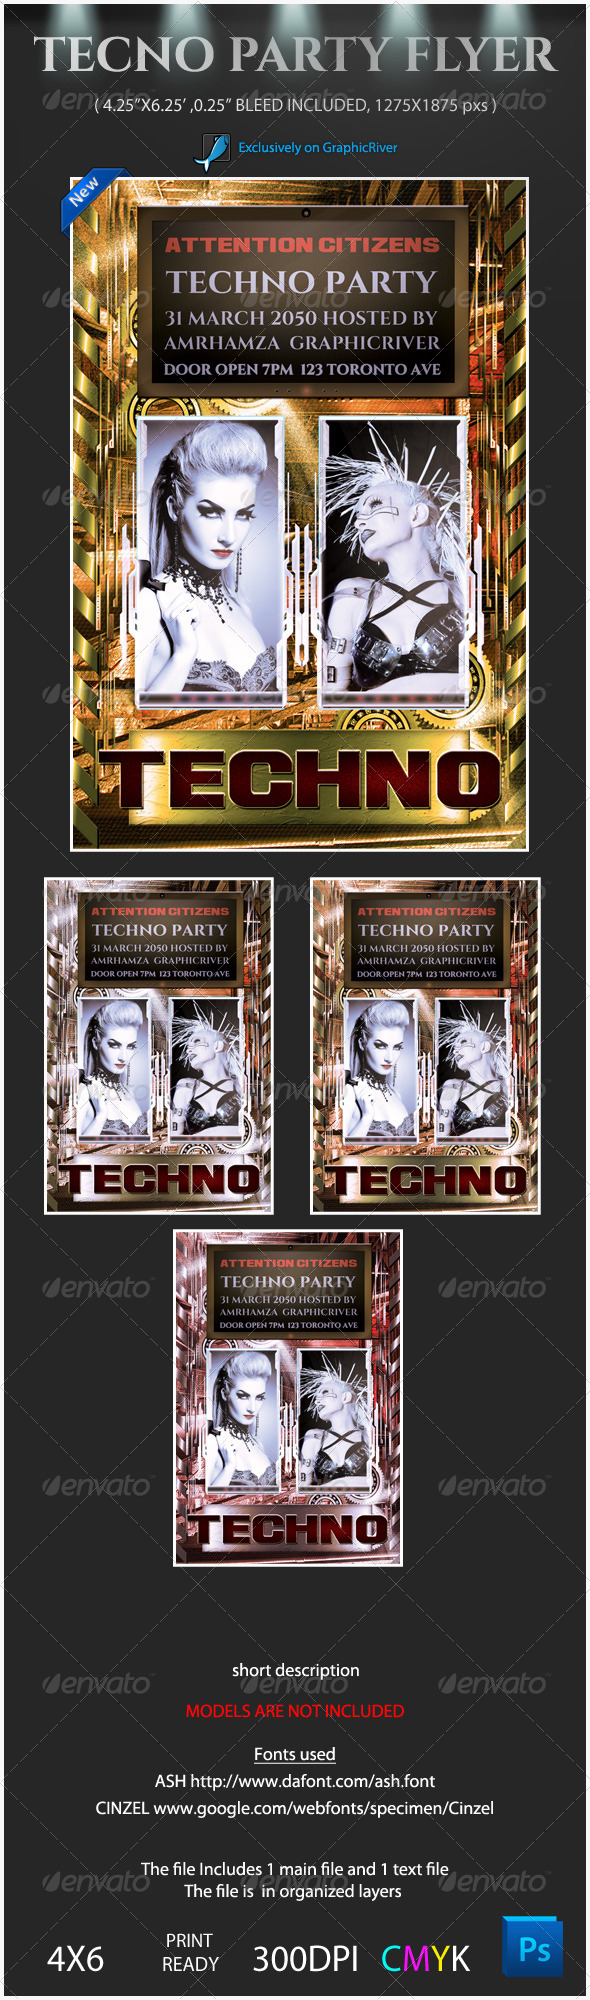 Techno Party Flyer Template - Clubs & Parties Events